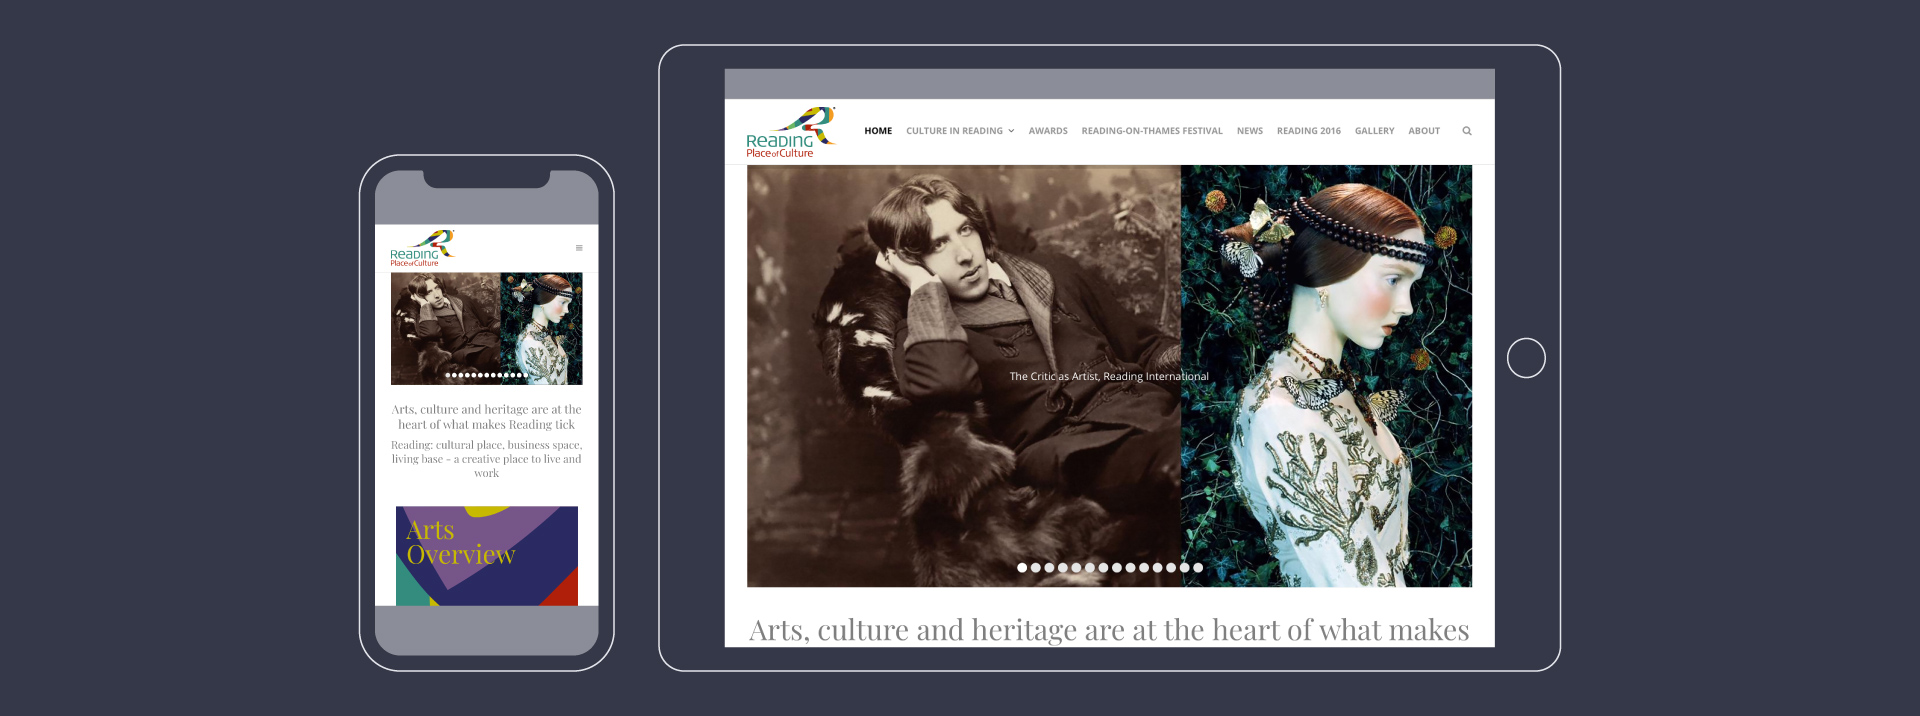 Reading Place of Culture Website Homepages